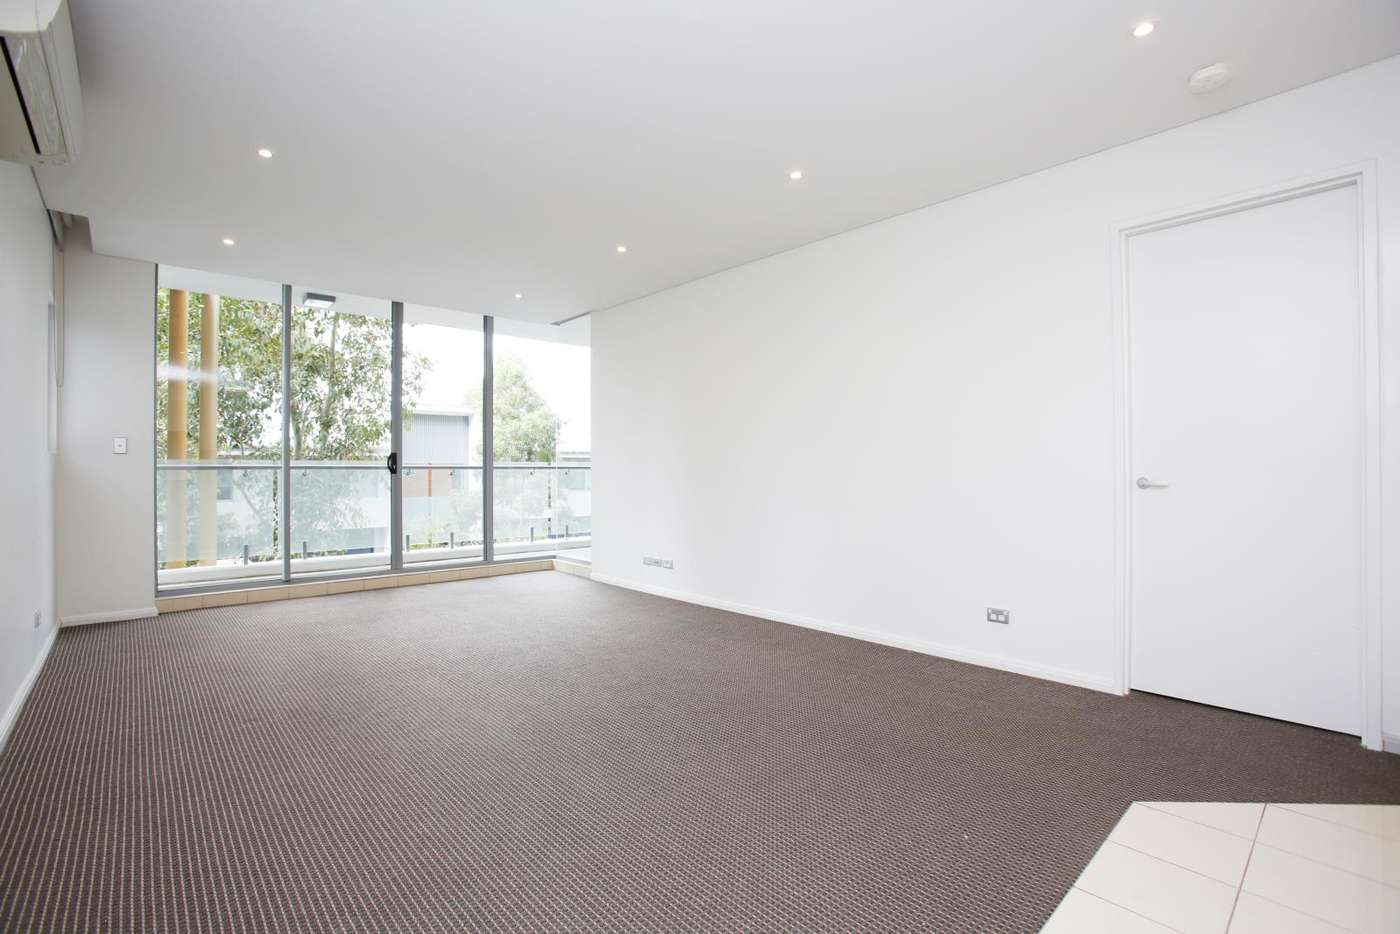 Main view of Homely apartment listing, 112/3 Ferntree Place, Epping NSW 2121